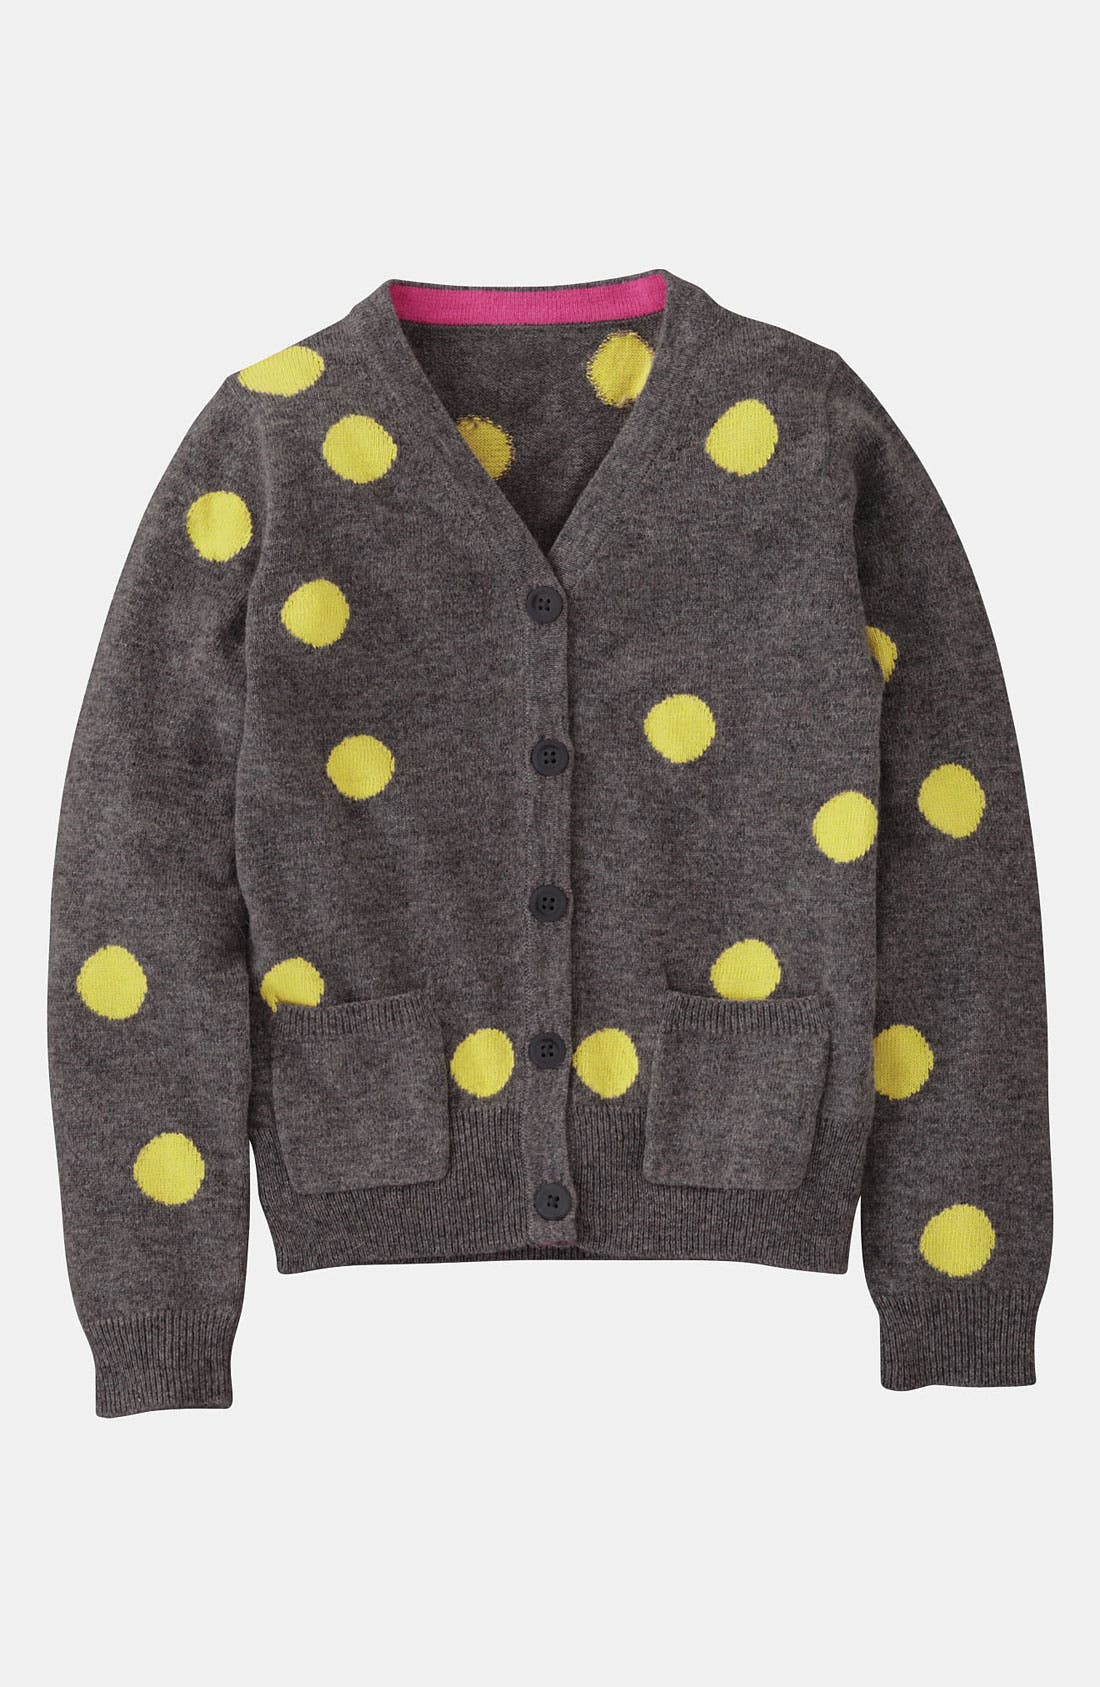 Alternate Image 1 Selected - Mini Boden 'Hotchpotch' Cardigan (Little Girls & Big Girls)